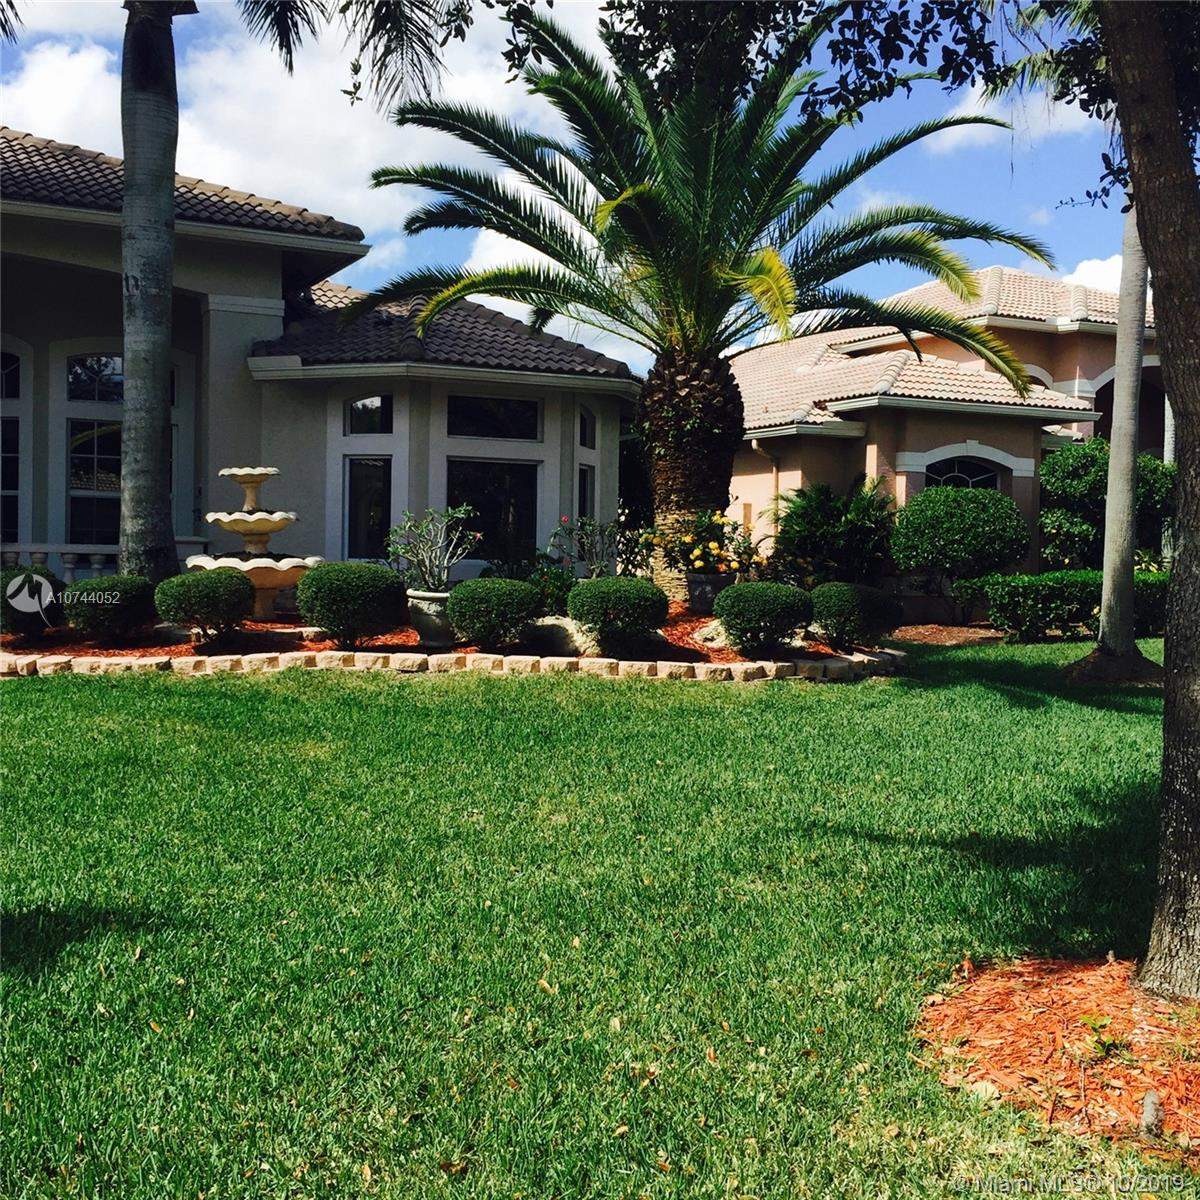 Listing A10744052 - Large Photo # 2